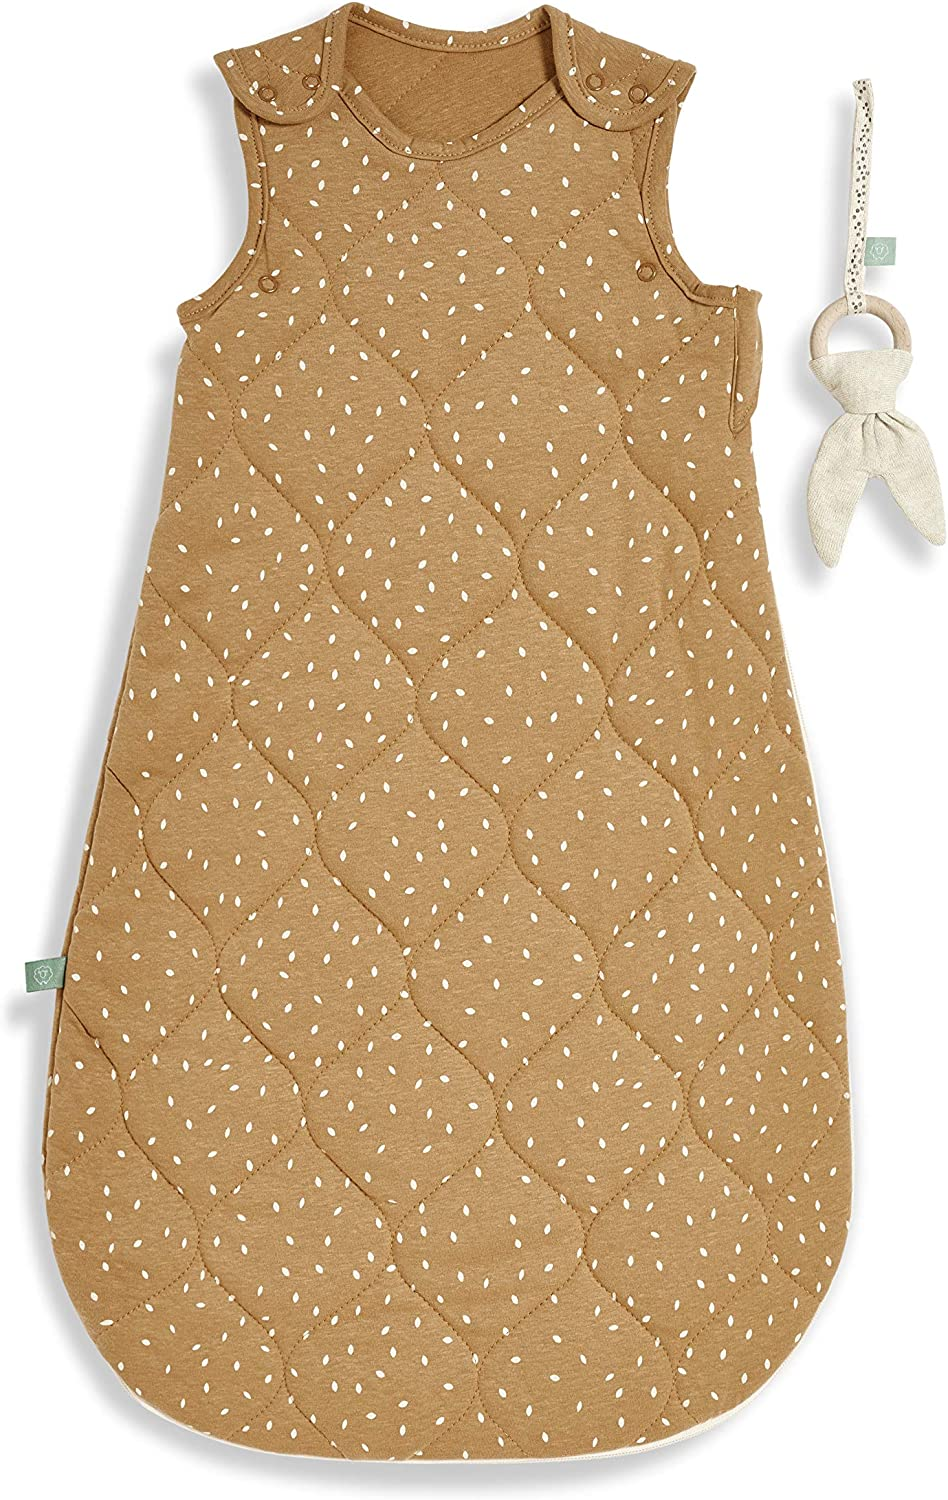 The Little Green Sheep Quilted Printed Linen Sleeping Bag 2.5 Tog 0-6 Months 350 g Honey with Linen Rice Print SB001BH